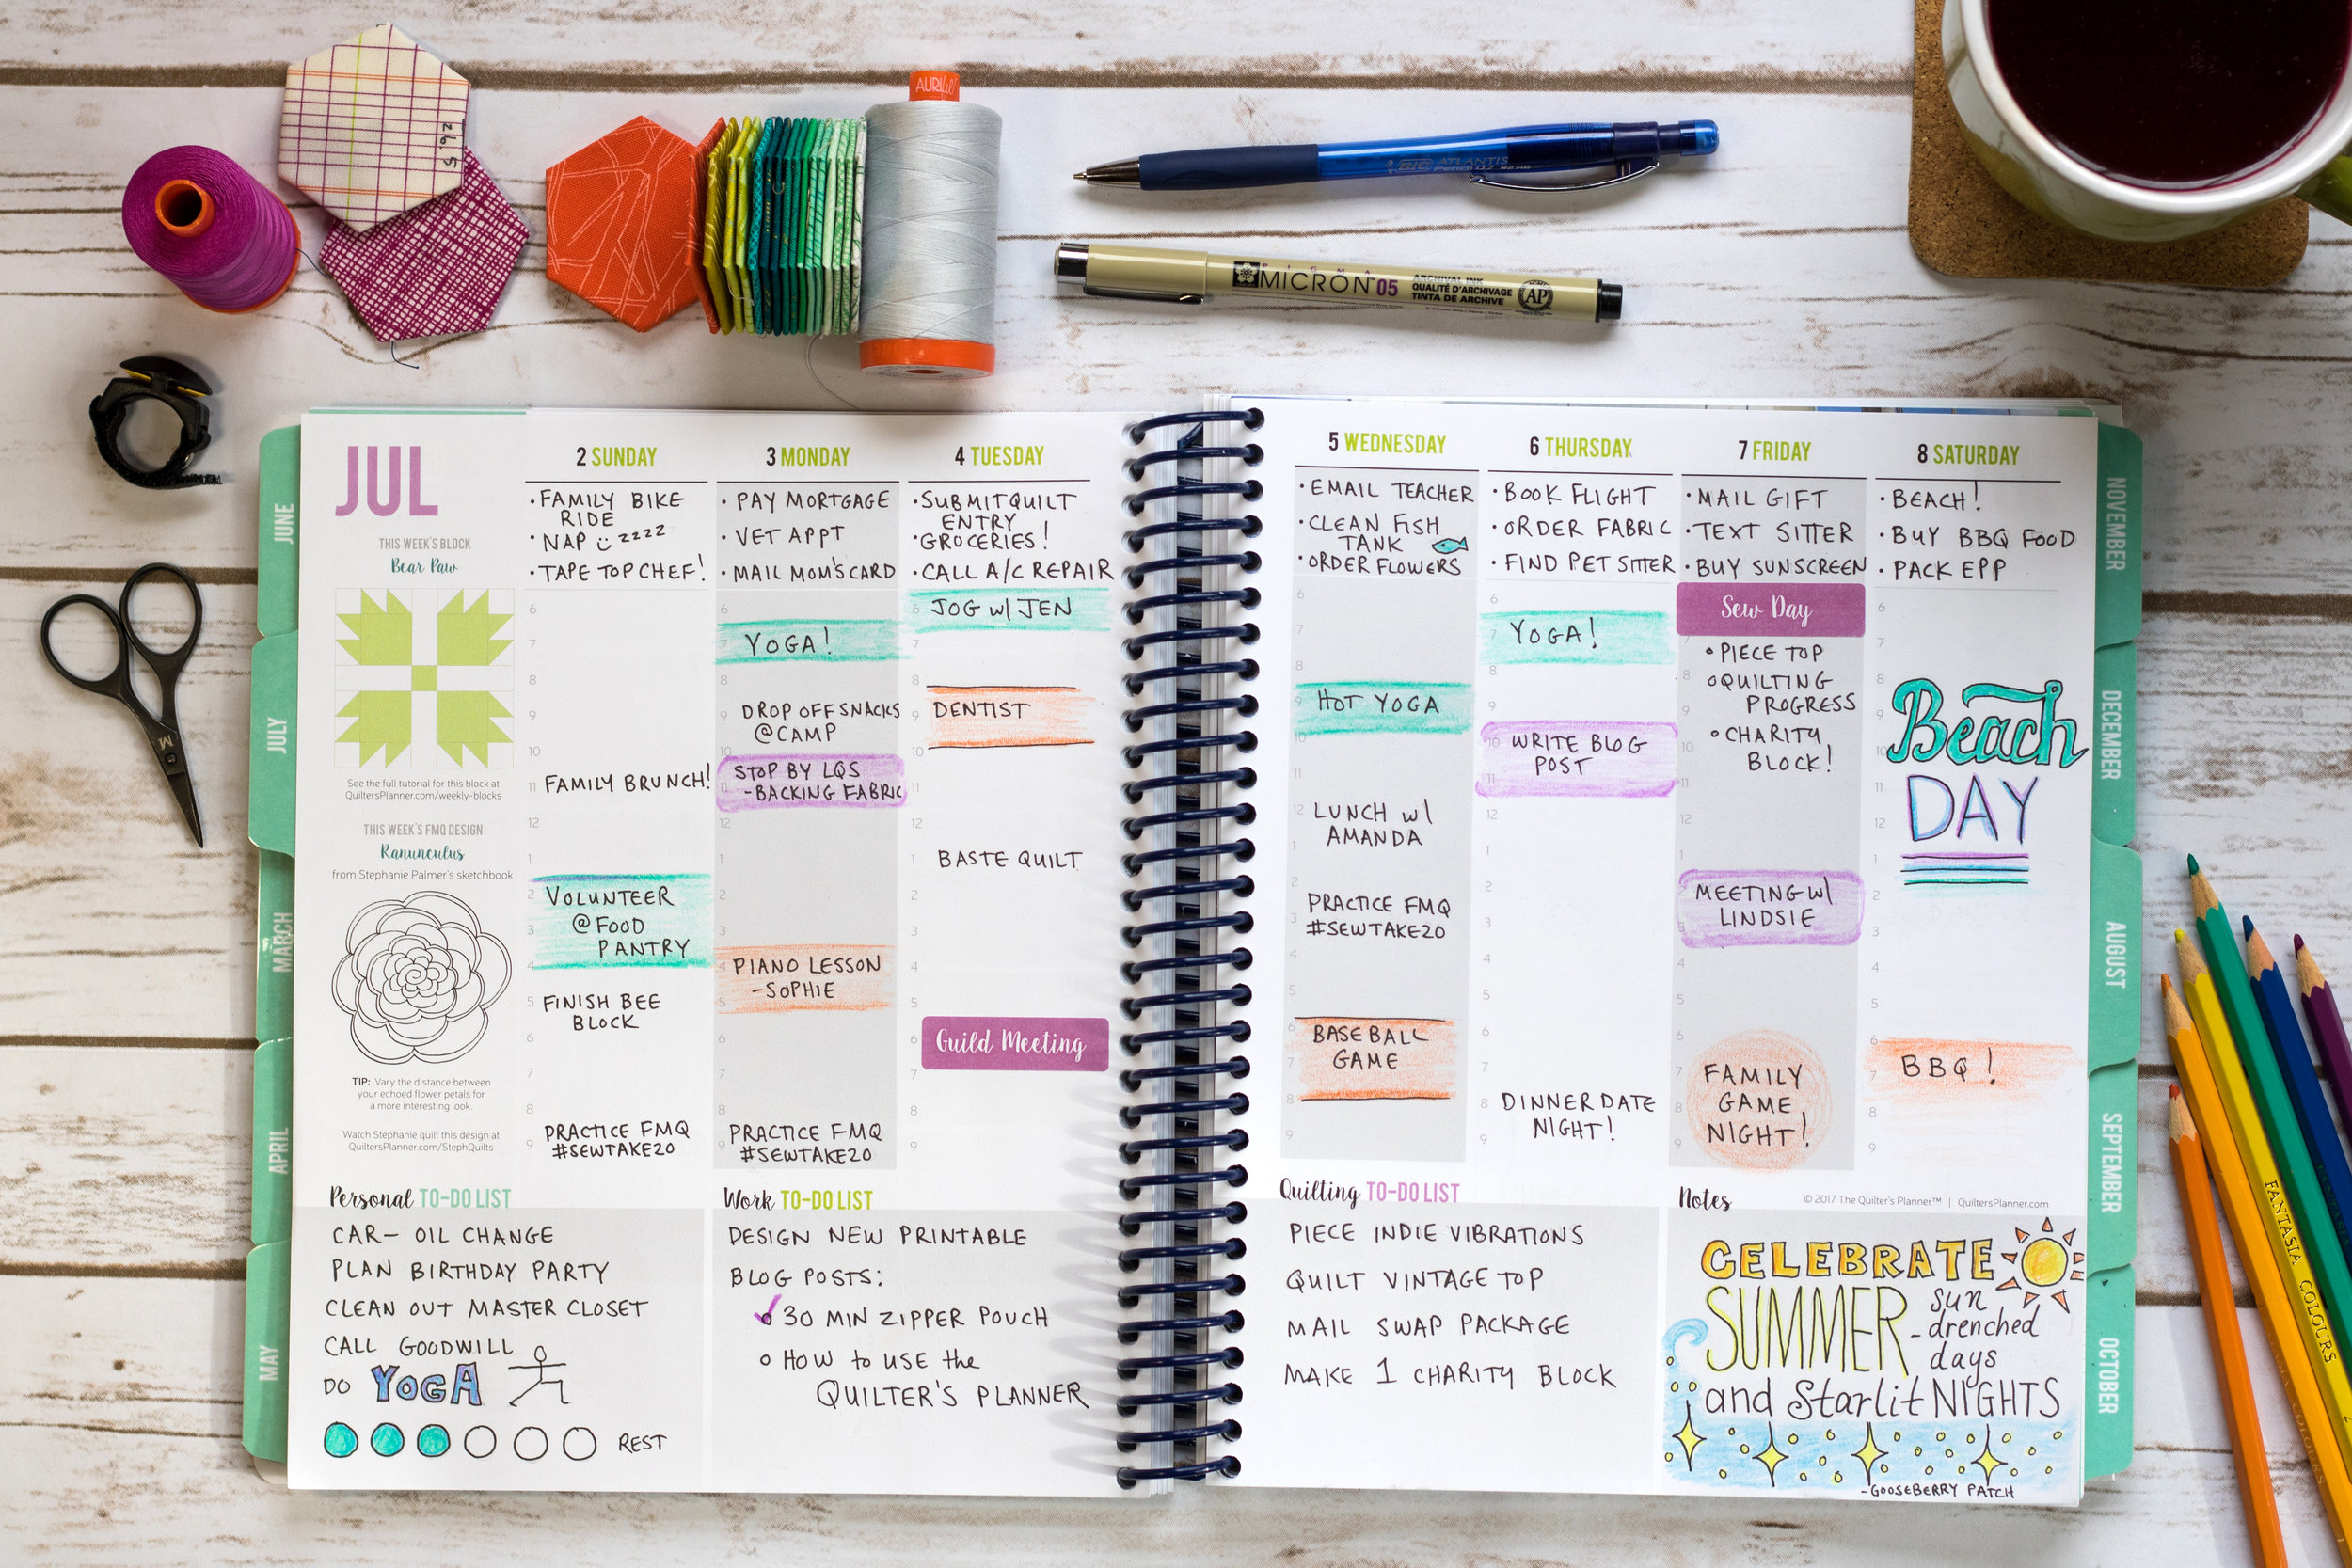 The Quilter's Planner photo courtesy of The Quilter's Planner